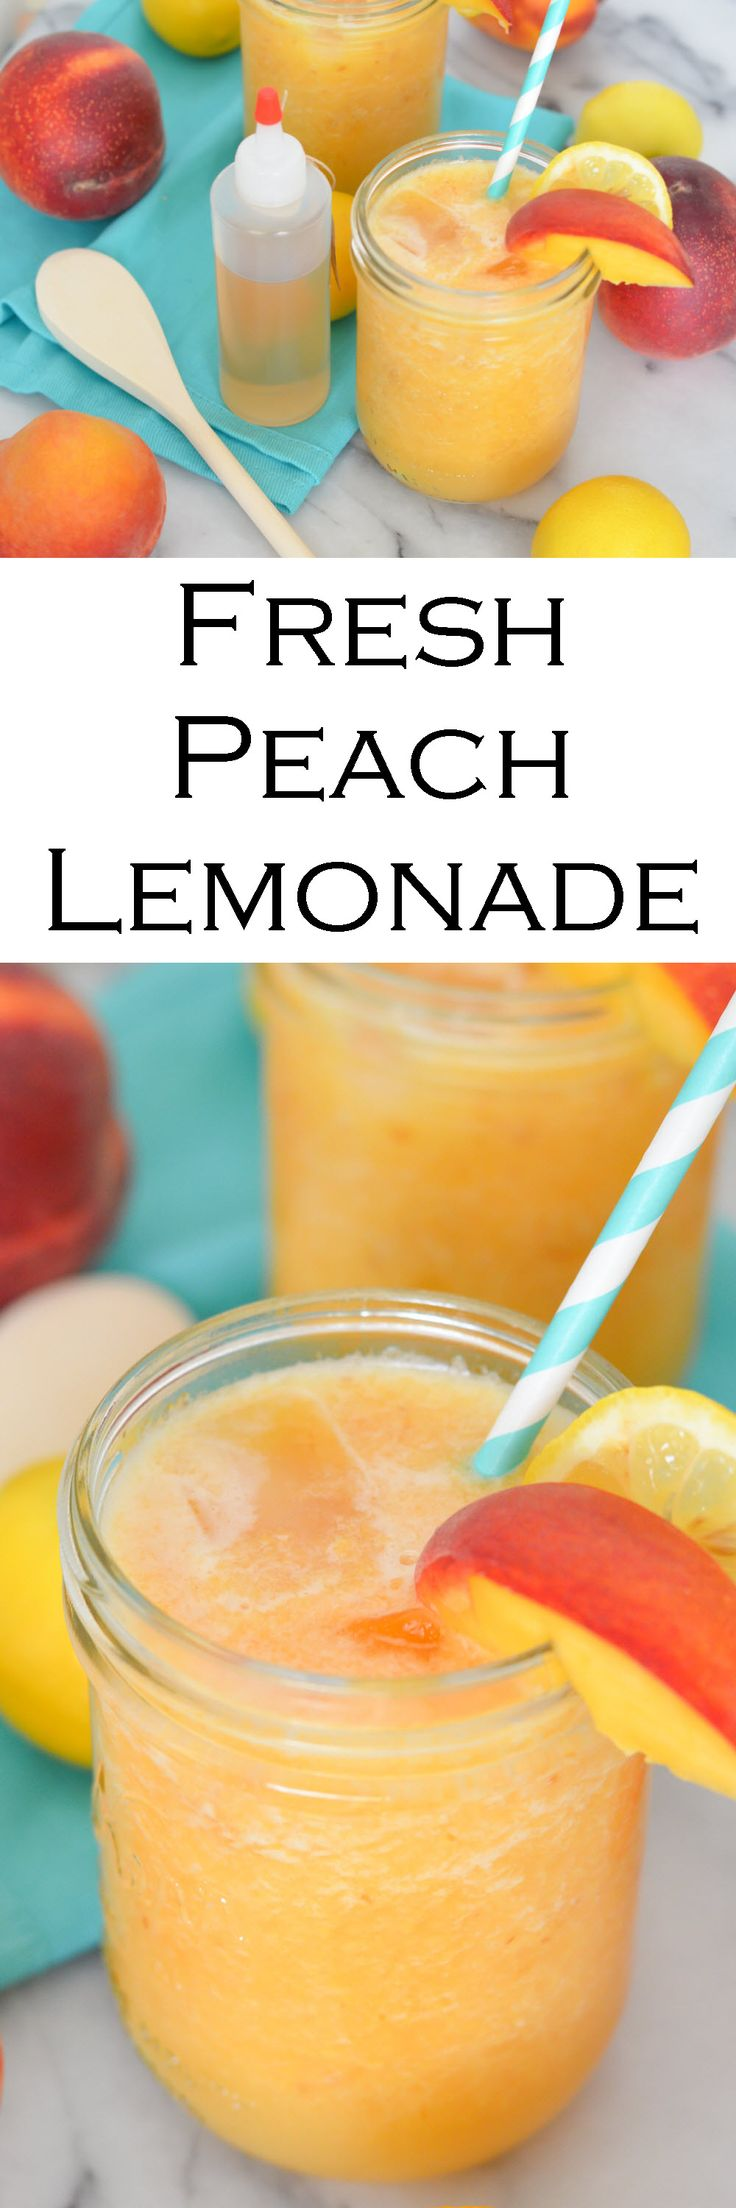 Fresh Peach Lemonade Made w. Peach Puree